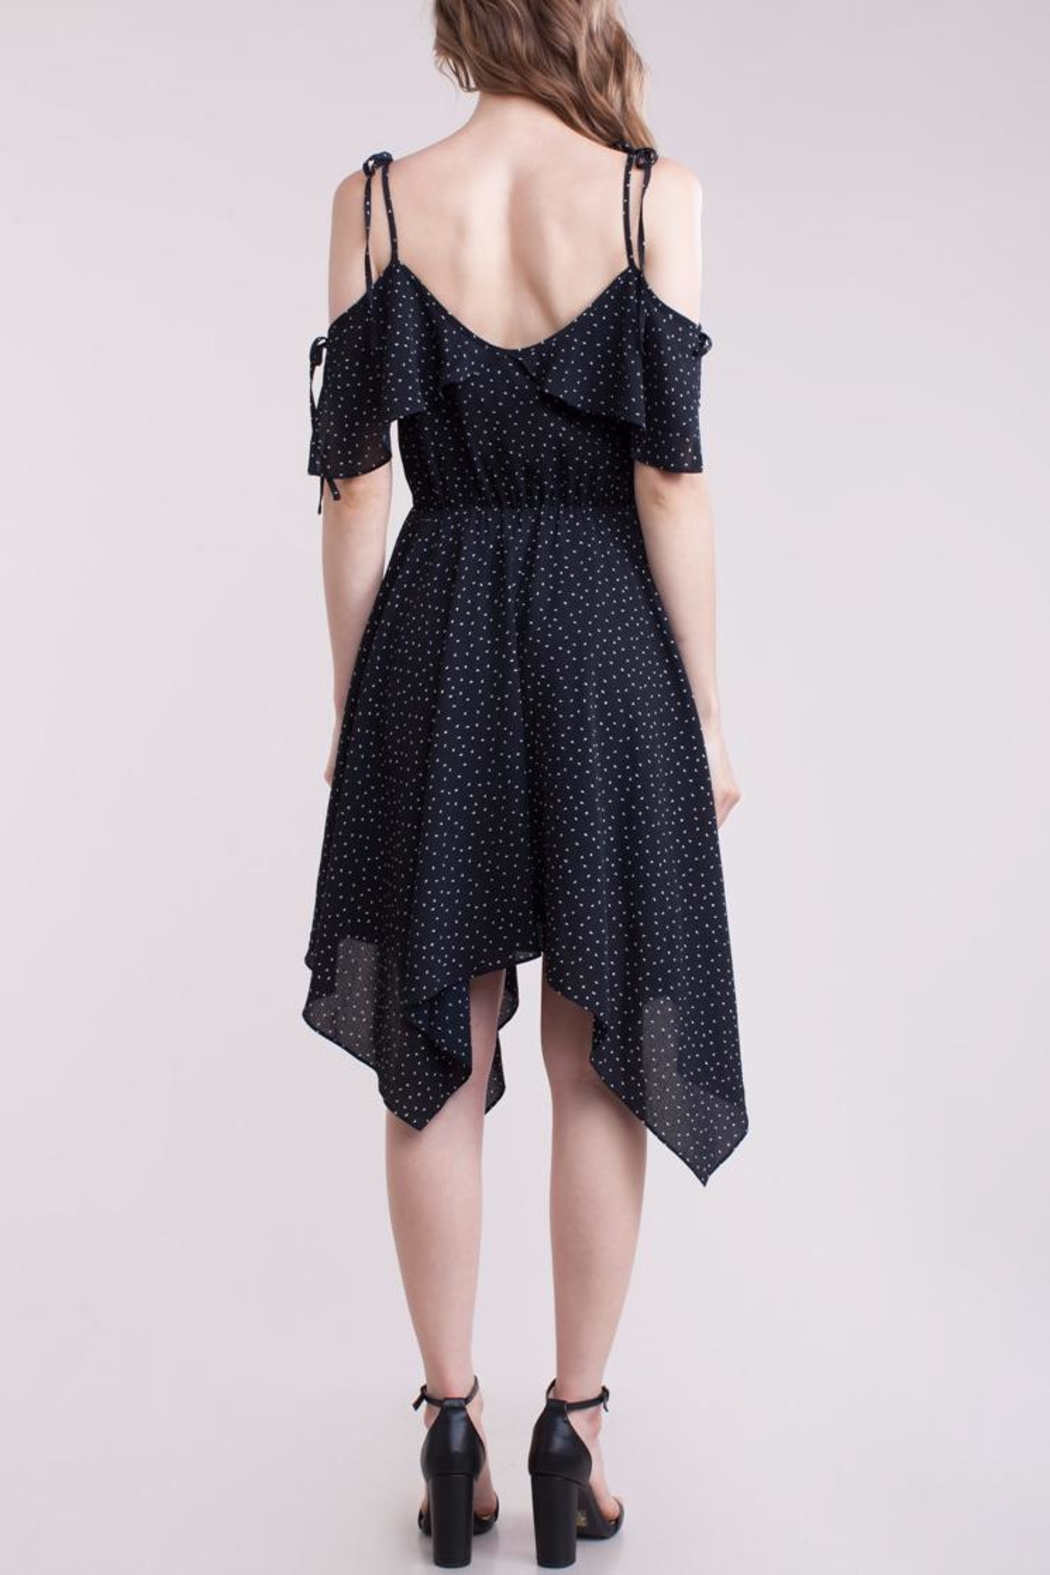 People Outfitter Blanche Ruffle Dress - Side Cropped Image